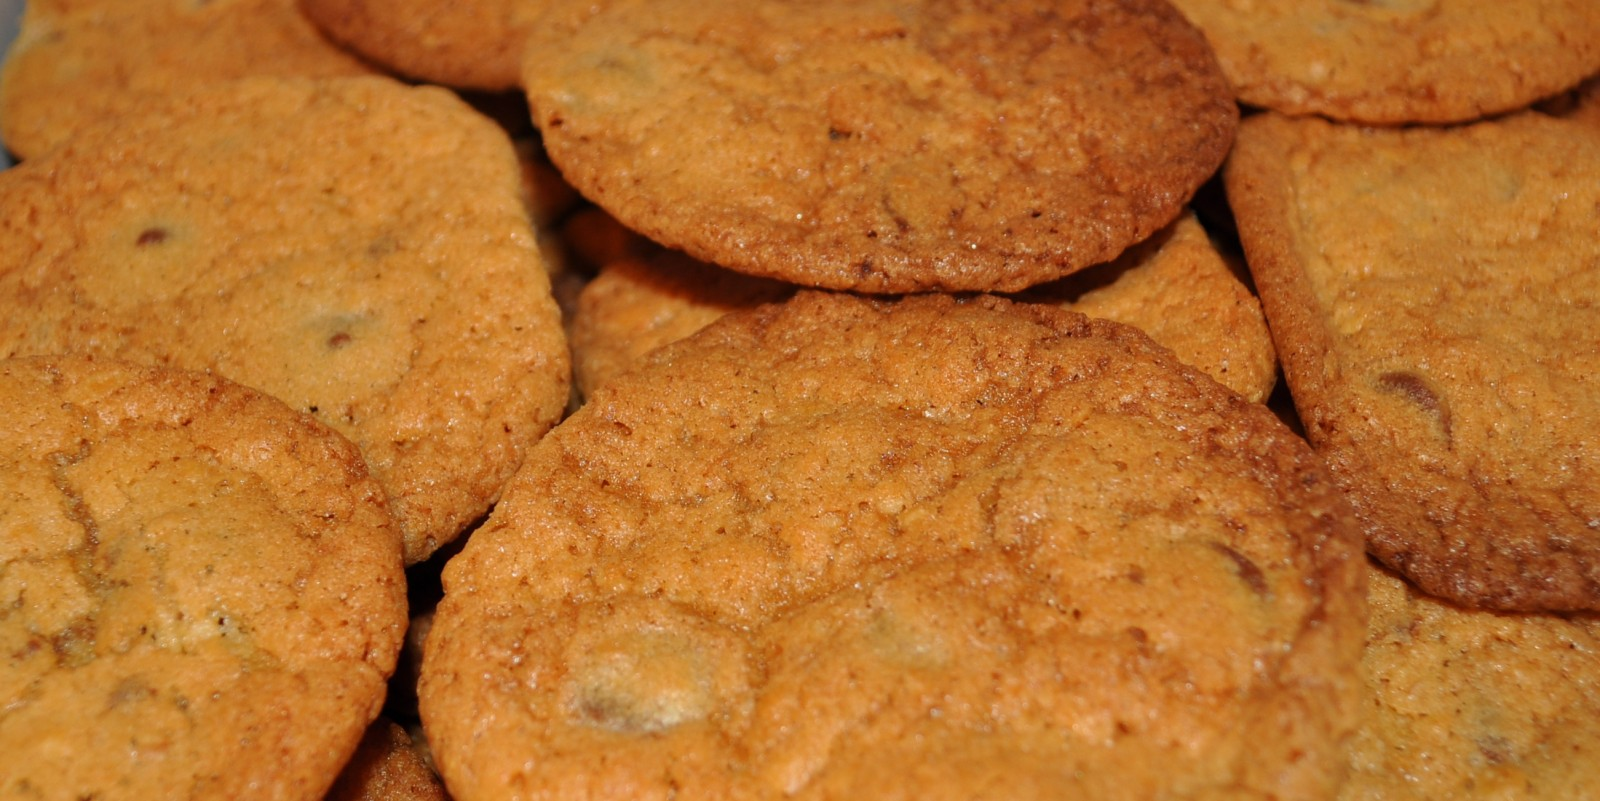 Baked relief – Choc chip cookies